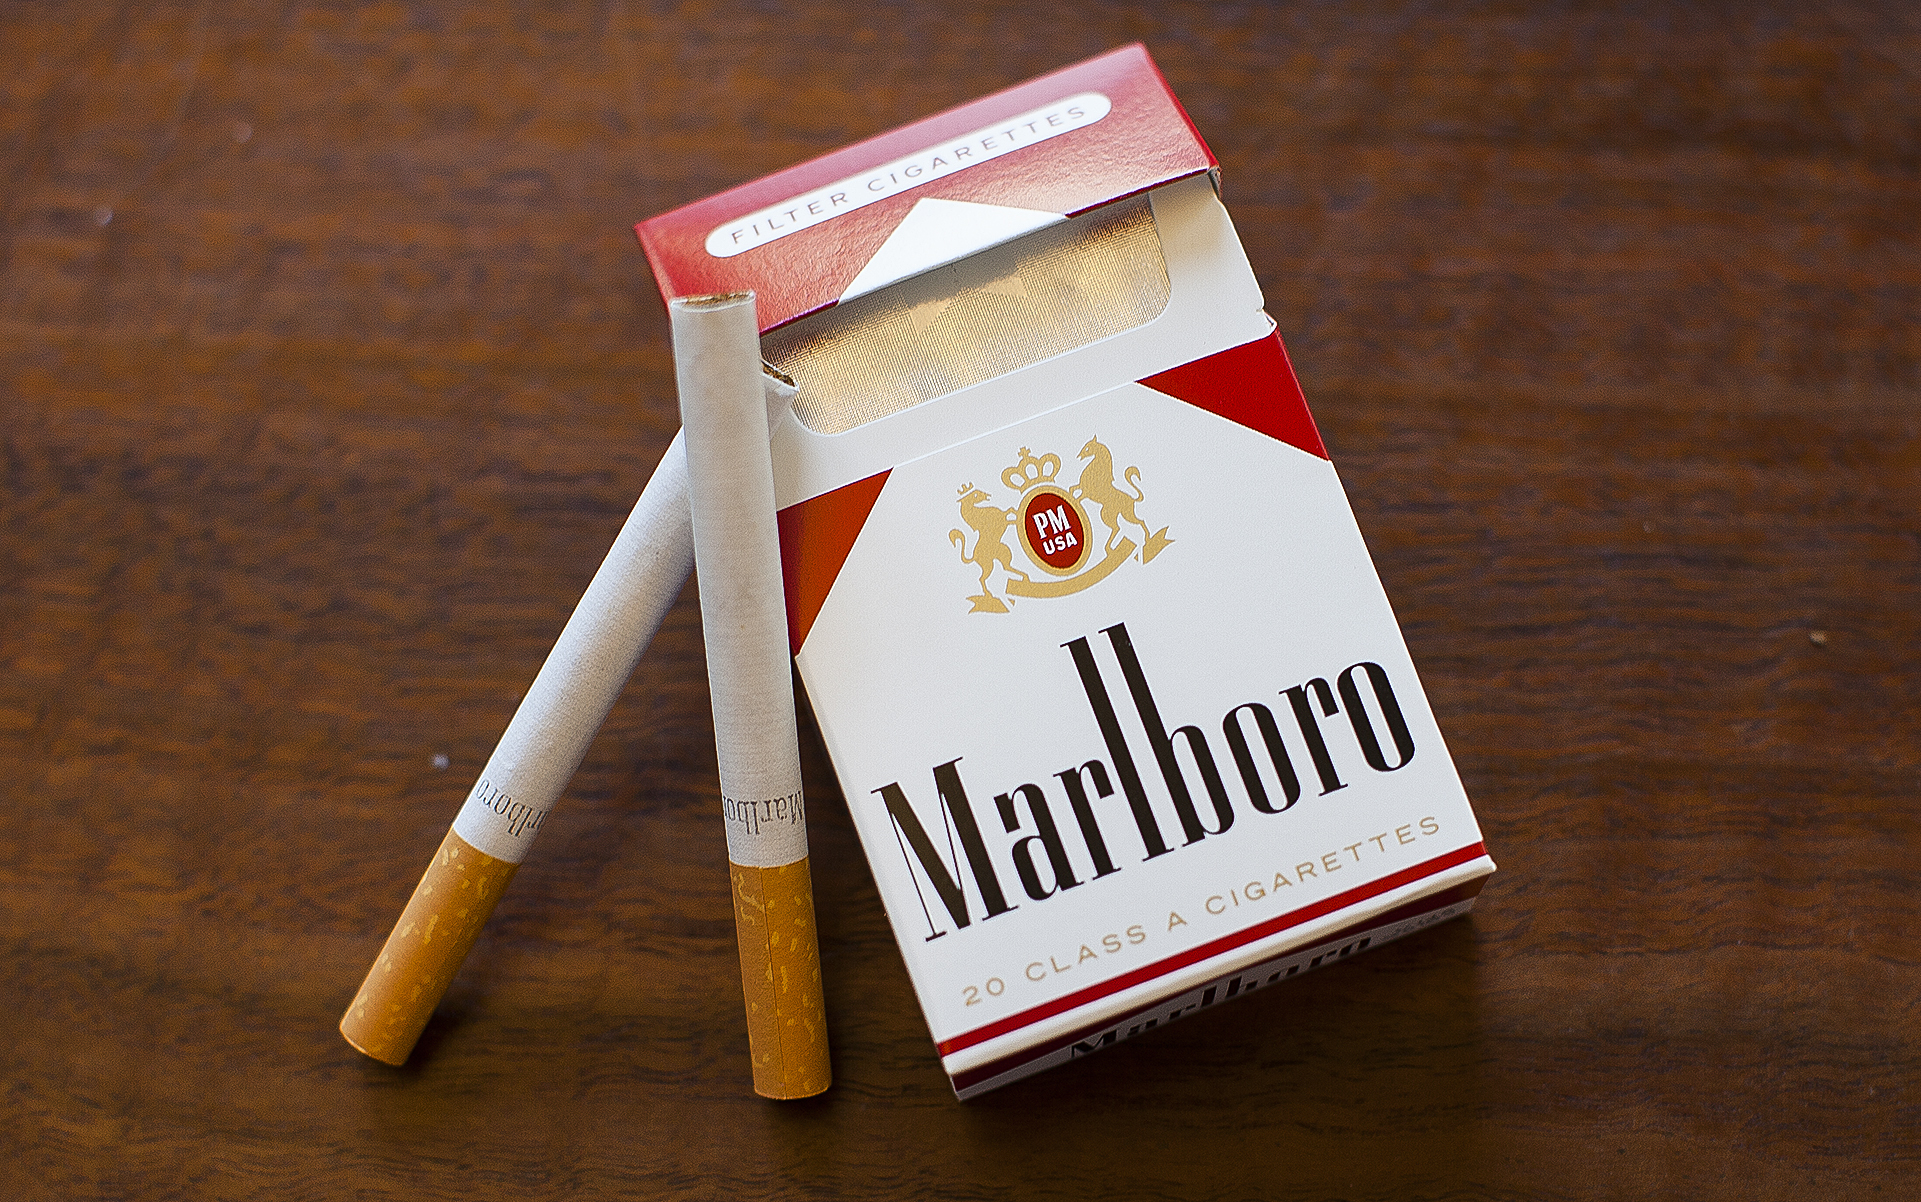 Just a regular old pack of Marlboro cigarettes.